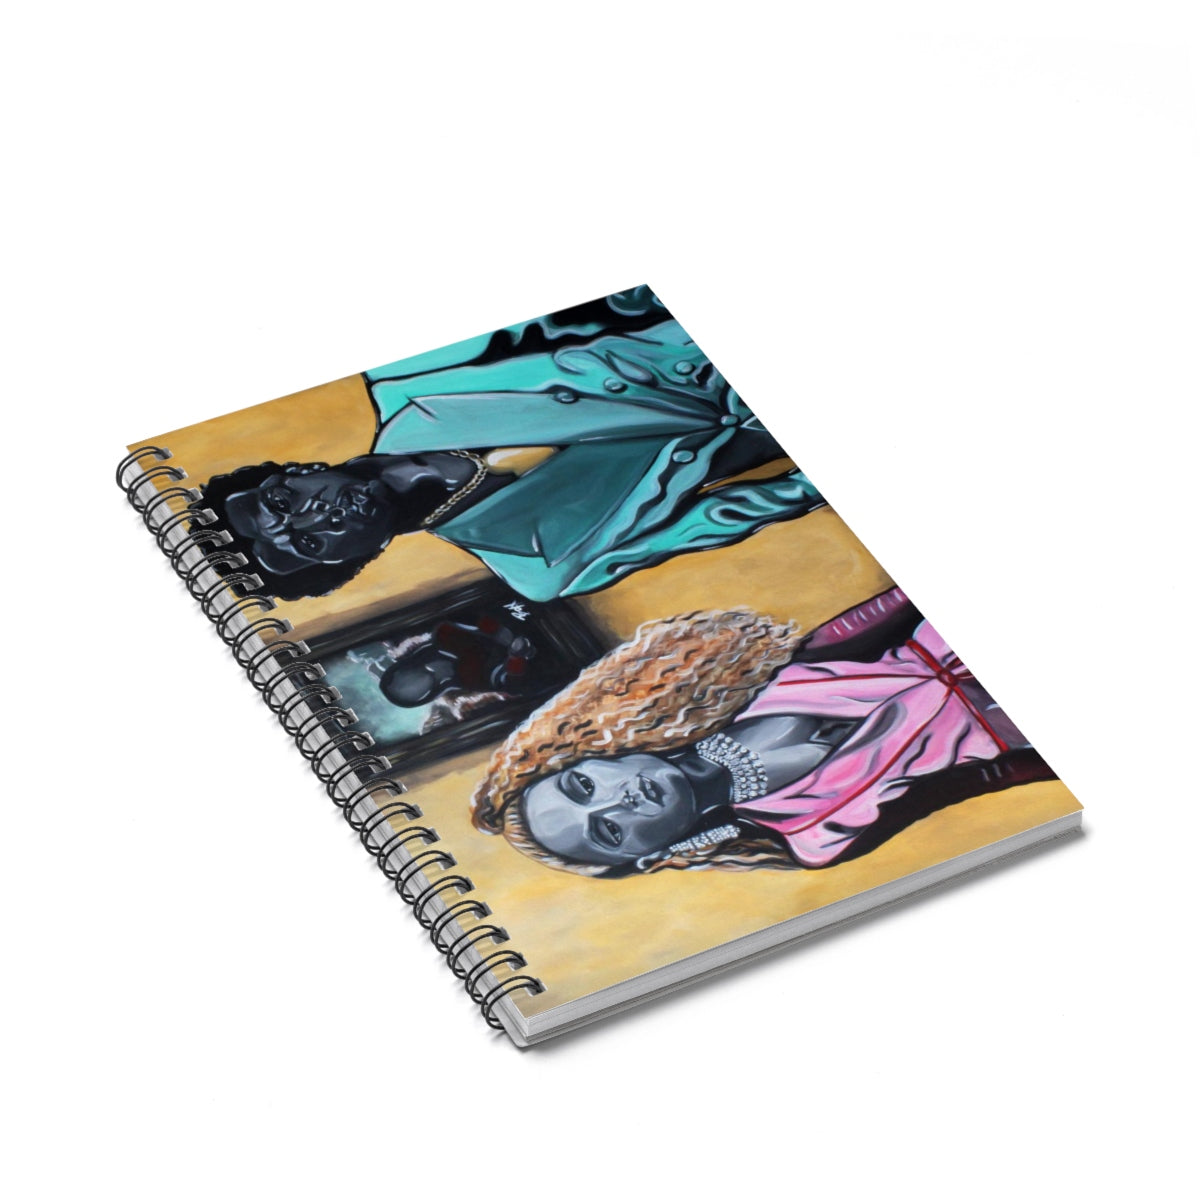 The Carters Spiral Notebook